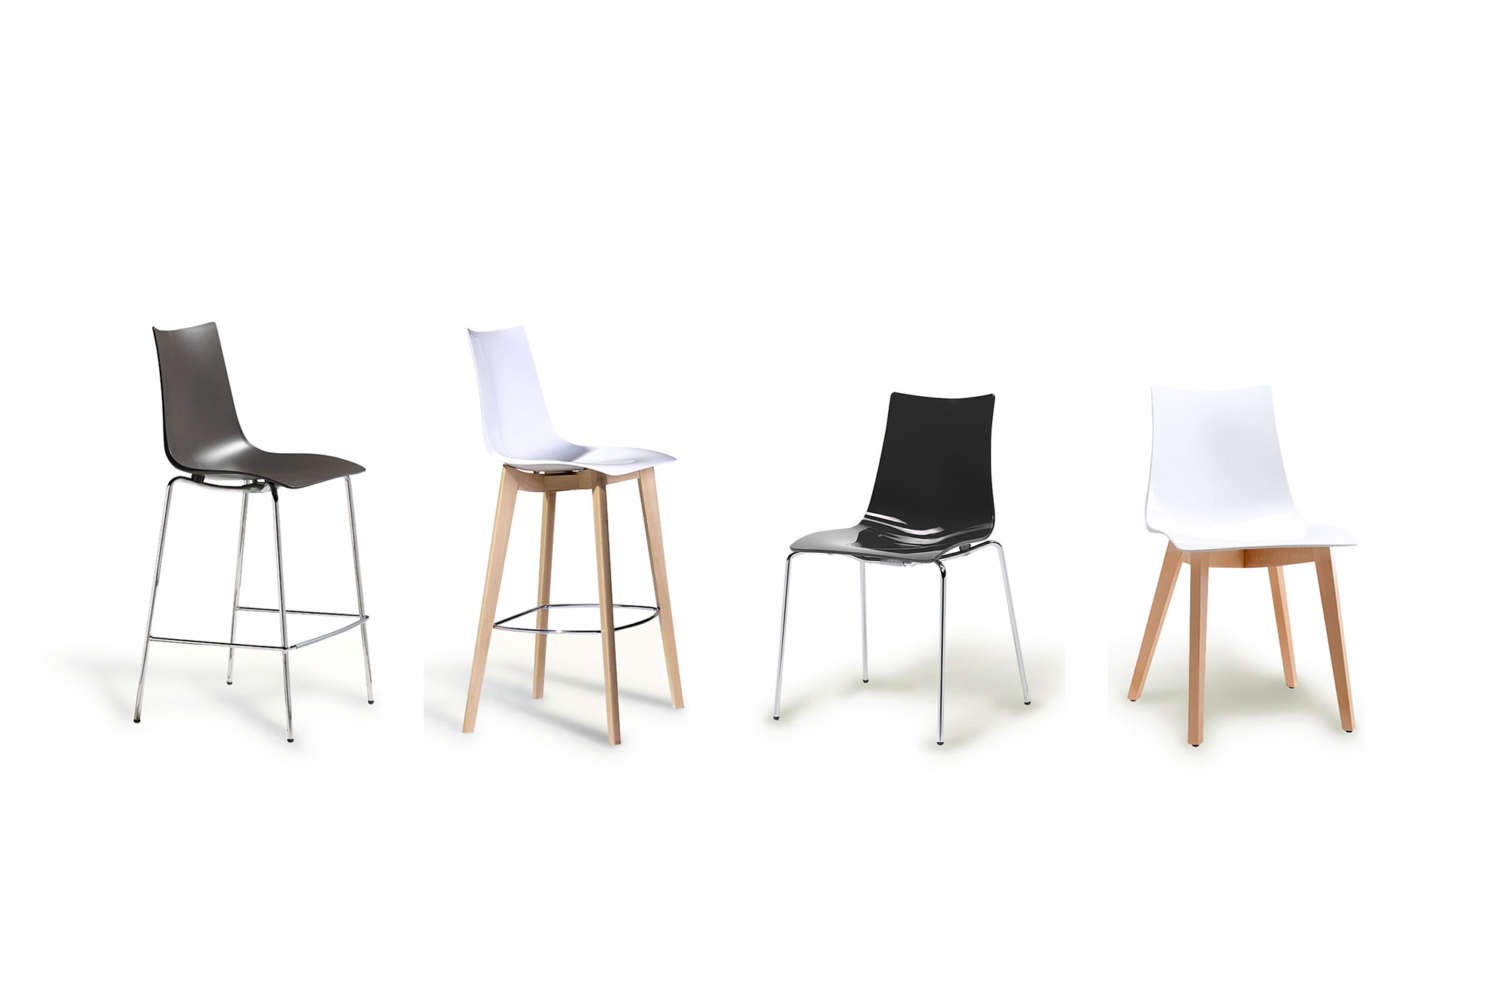 Black & White commercial plastic chairs and plastic stools